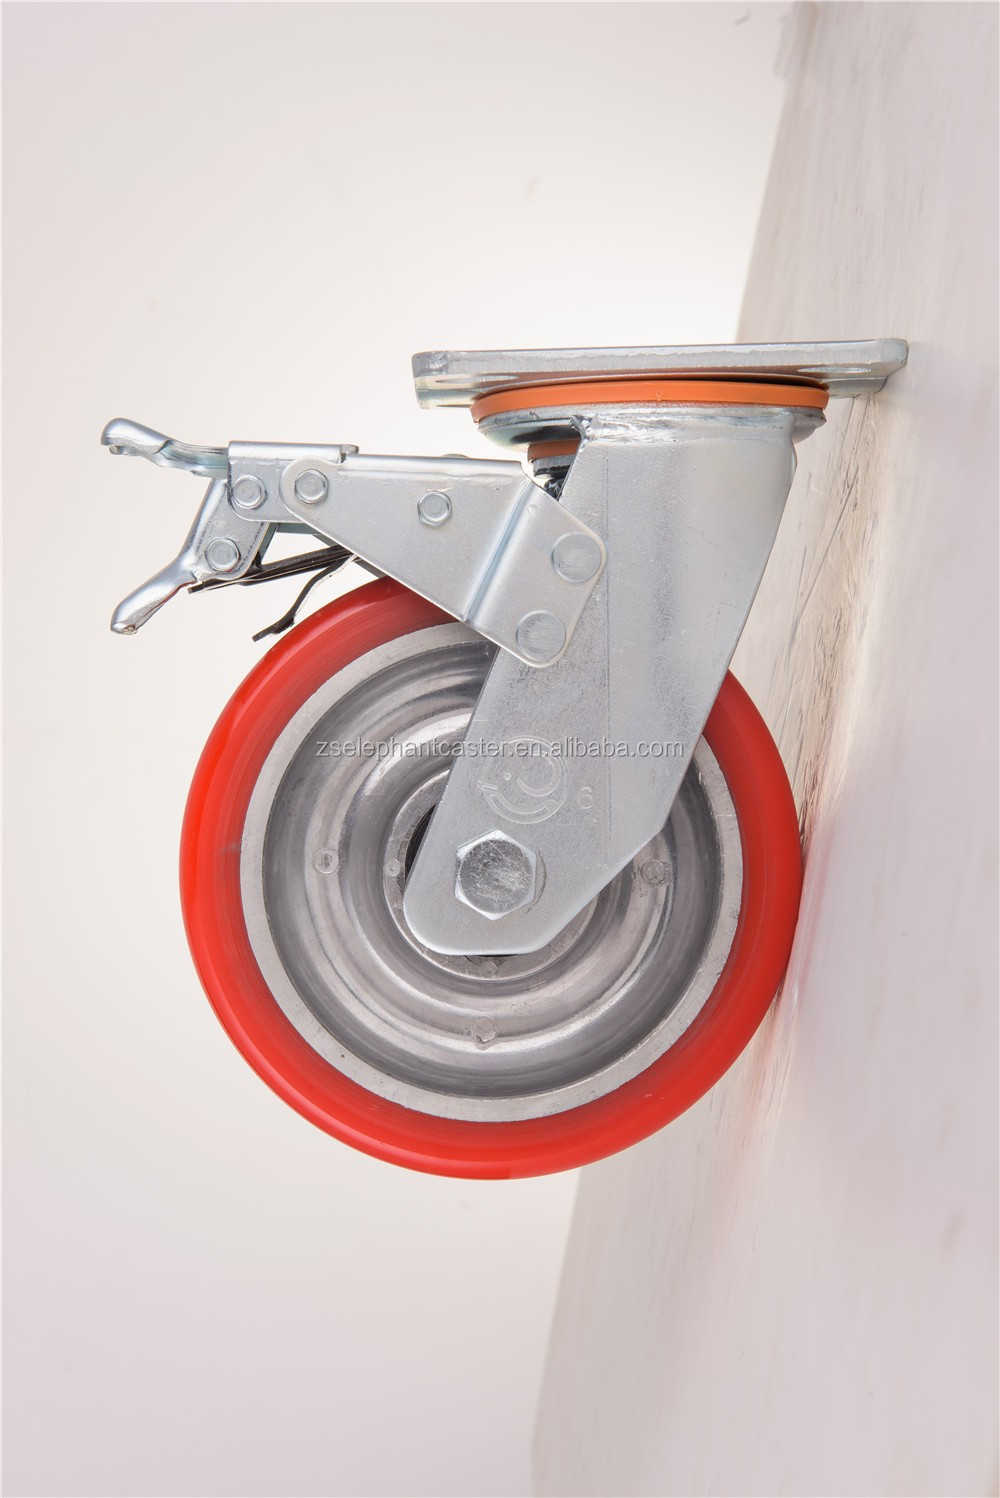 medium duty swivel caster <strong>wheel</strong> with brake